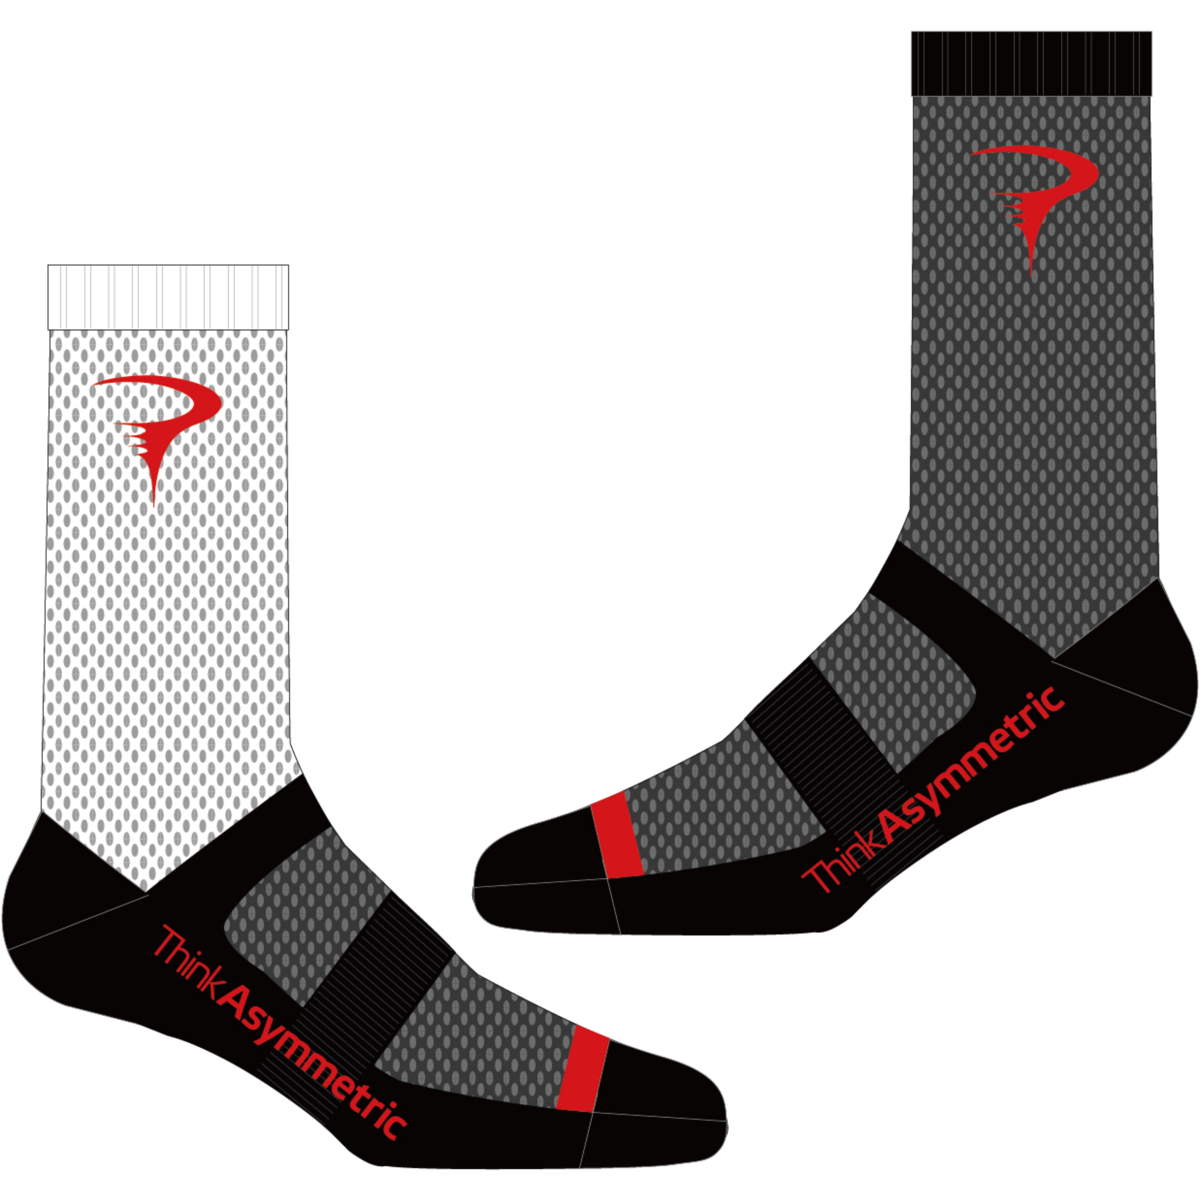 ピナレロ Logo Sock(Think Asymmetric)